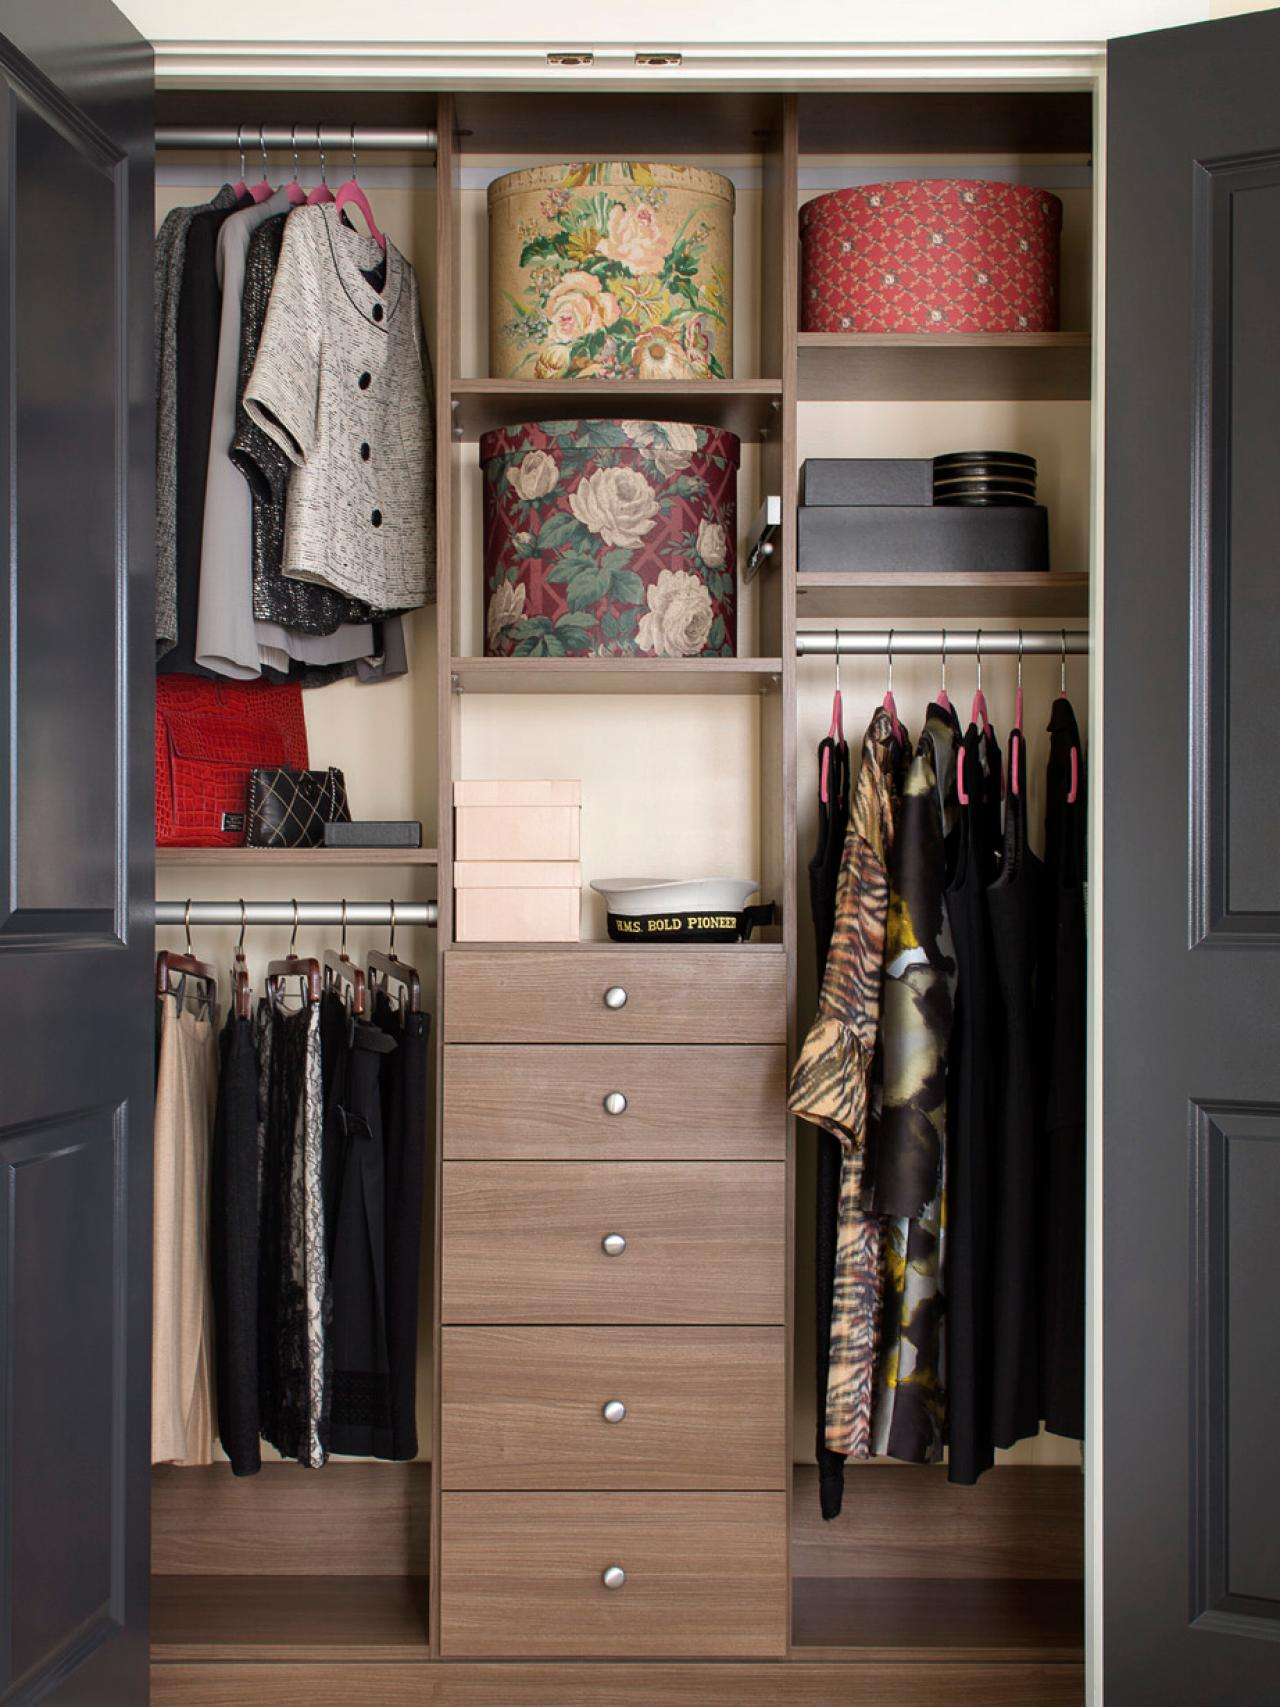 Closet Organizing Ideas closet organization ideas | hgtv